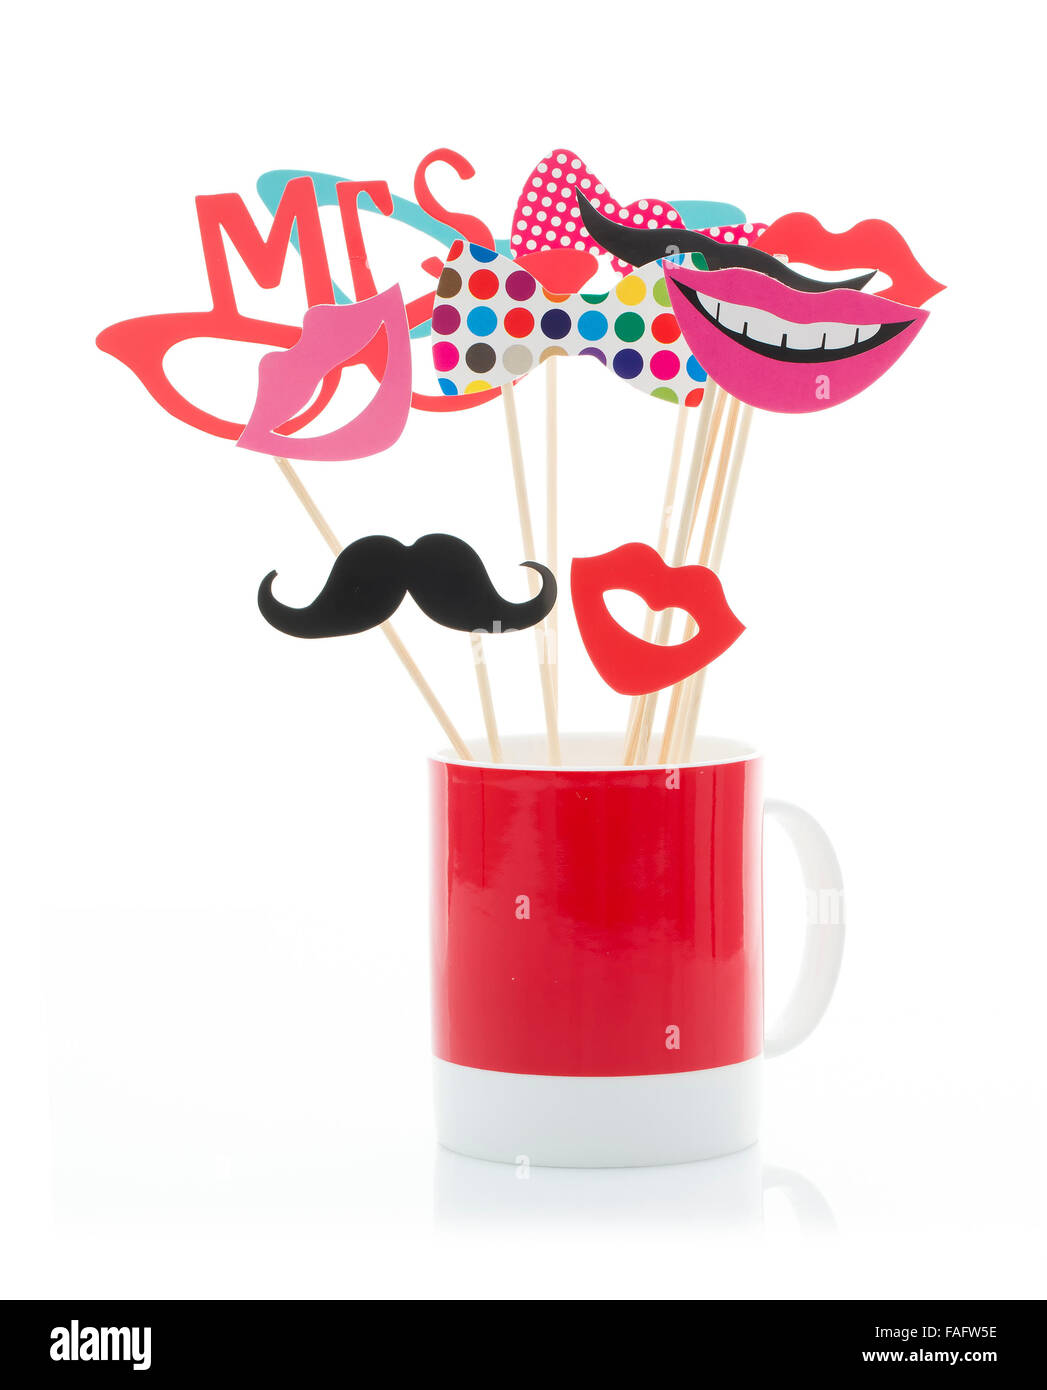 Photo Booth Props in a Red Mug on a White Background - Stock Image